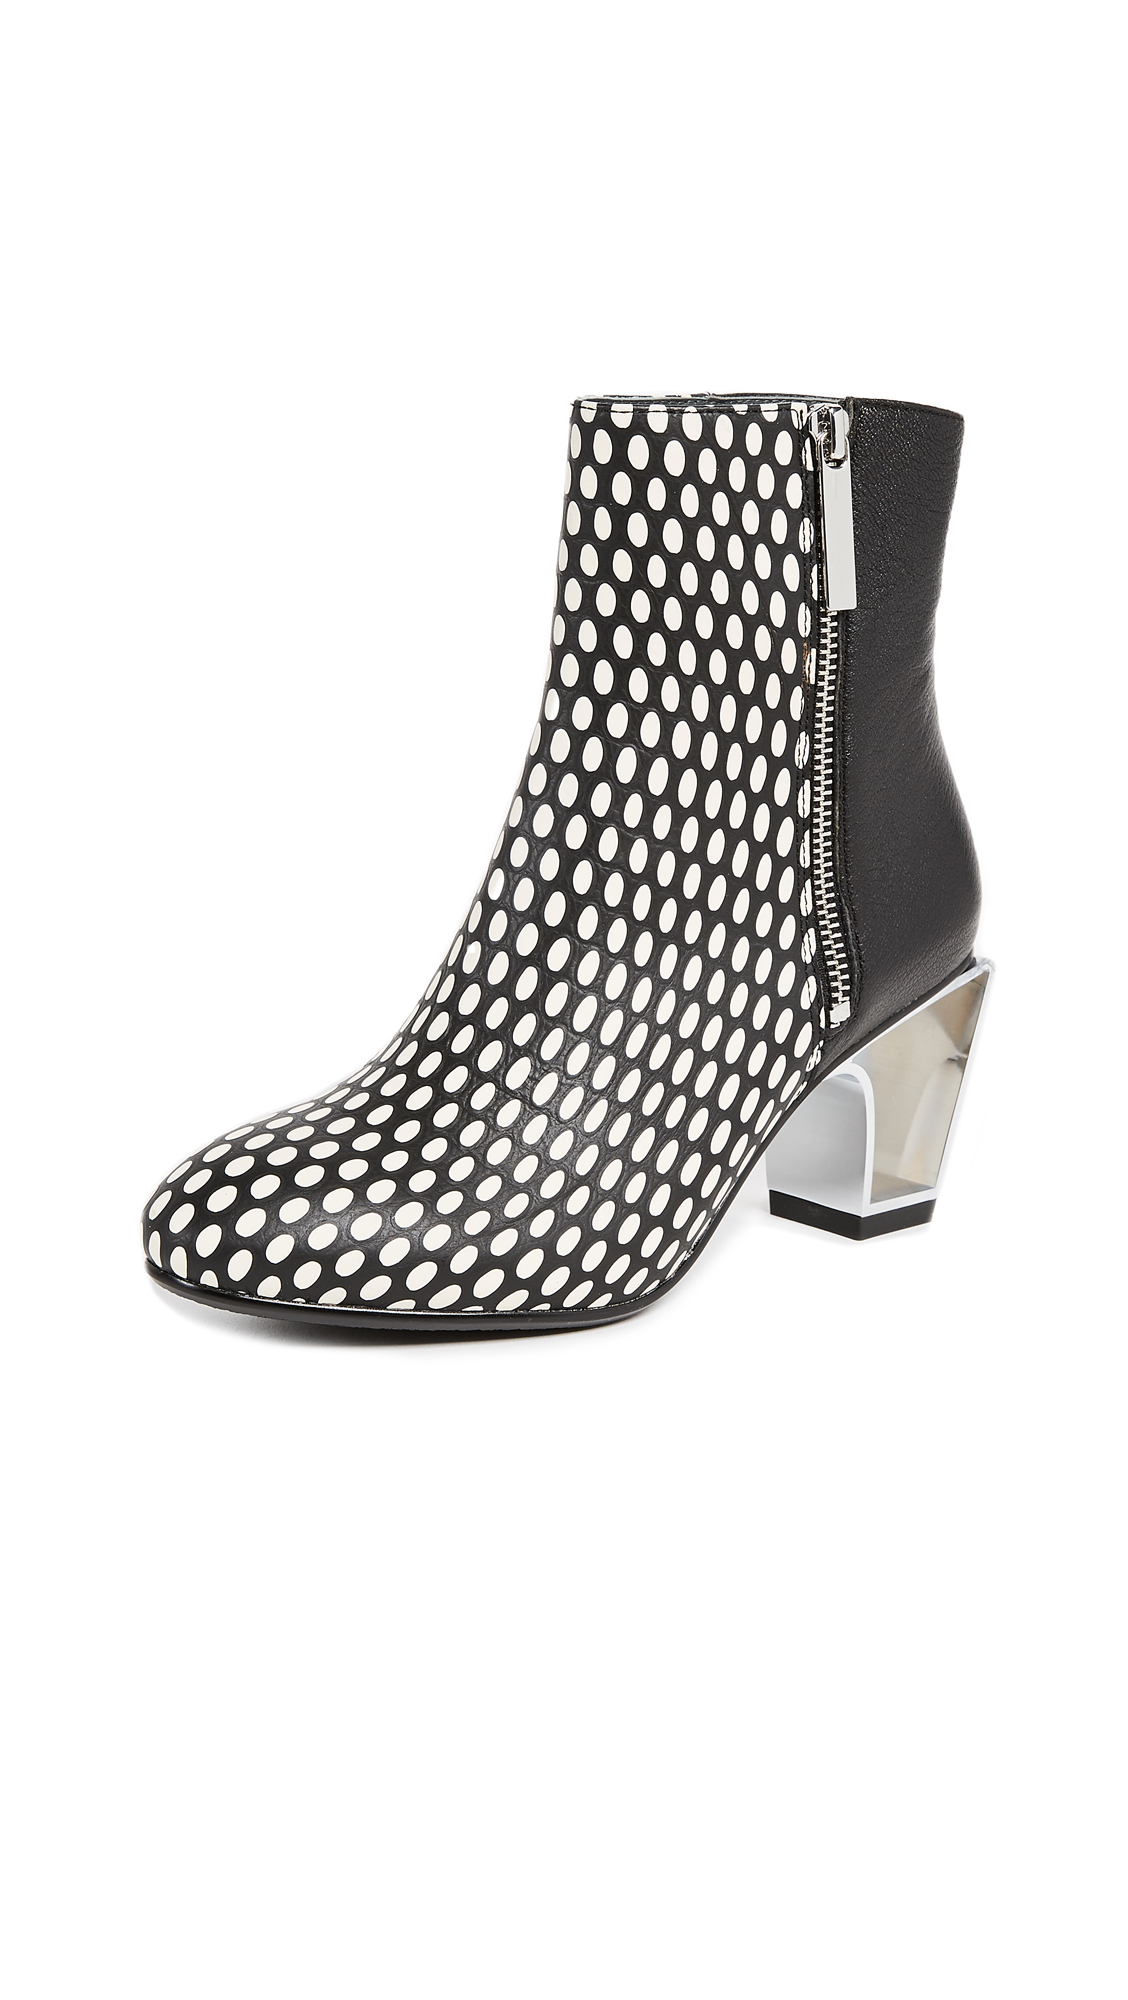 United Nude Icon Mid Booties - Black/White